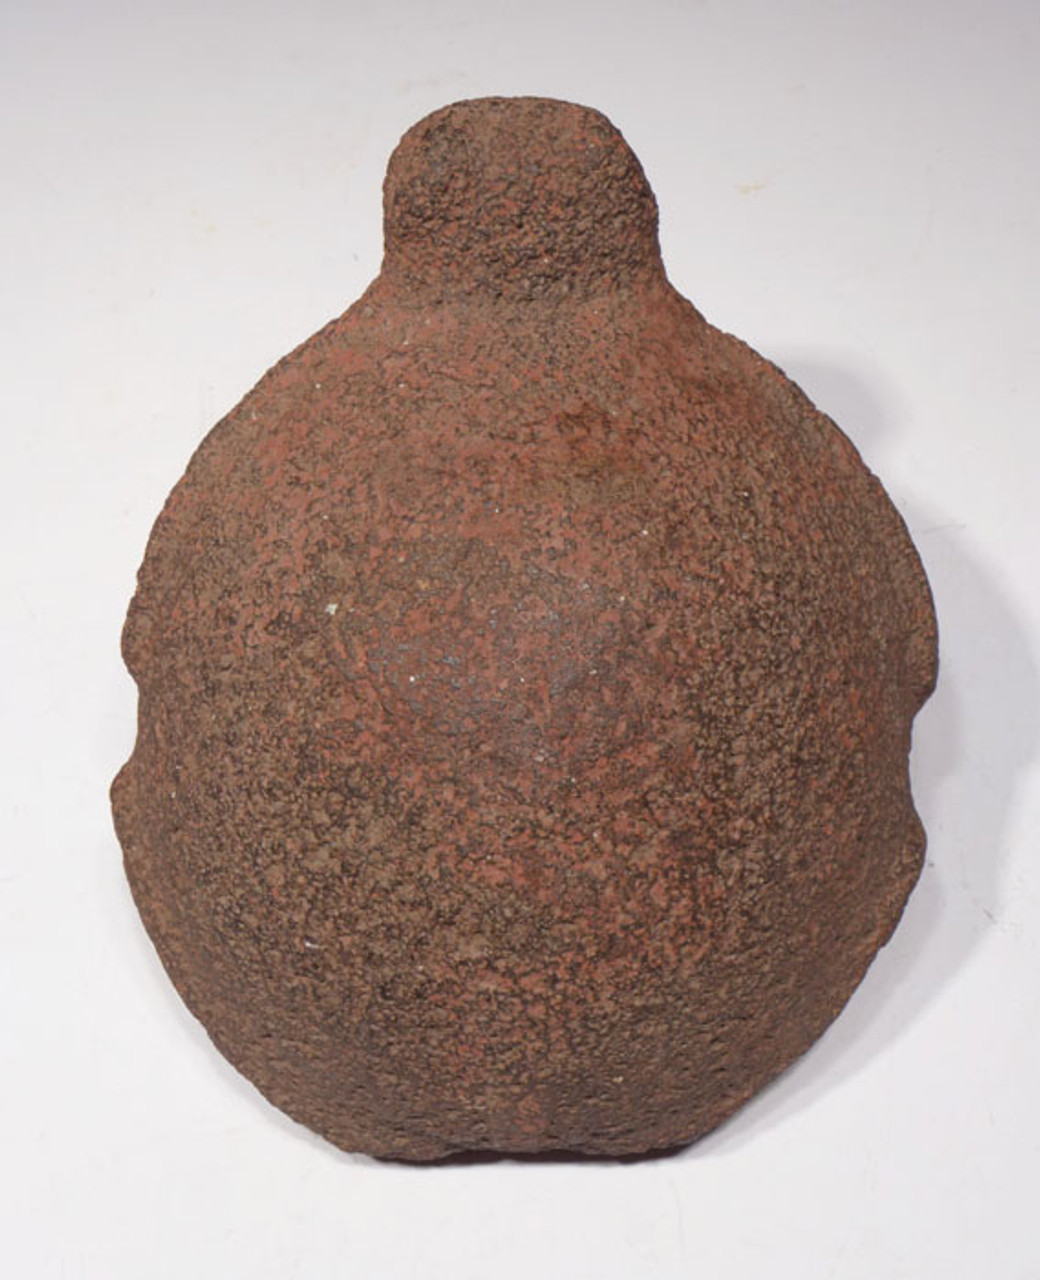 PCX001 -  PRE-COLUMBIAN TURTLE EFFIGY MILL GRINDING STONE WITH ORIGINAL RED CINNABAR PIGMENT FROM CENTRAL AMERICA